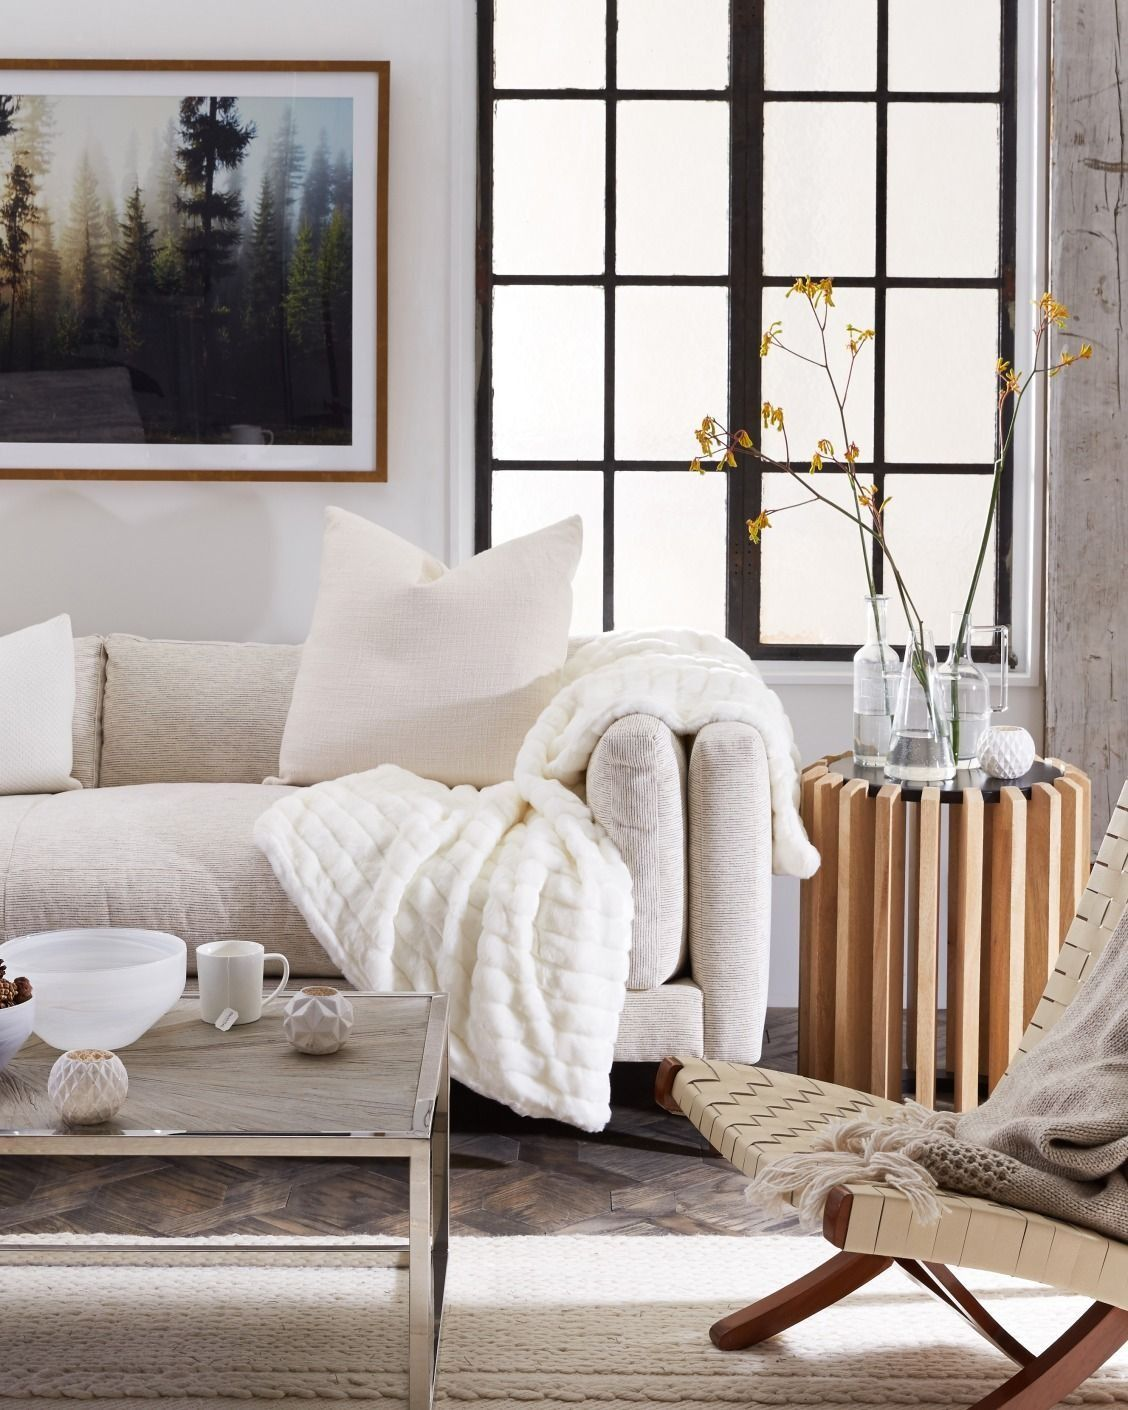 Newlywed Home Decor: Here's How To Hygge (Your Way)